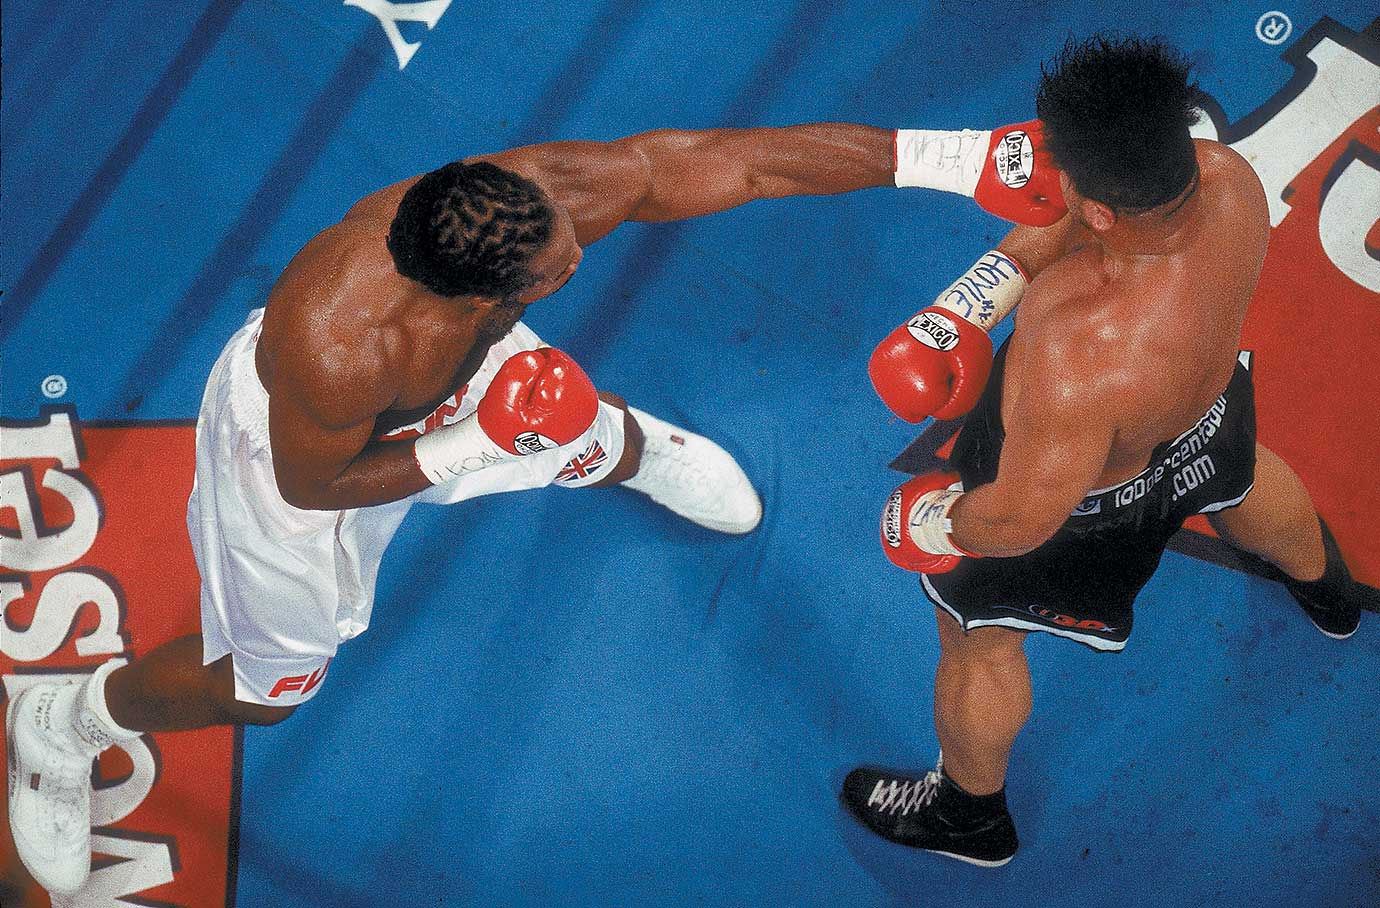 Lennox Lewis lands a left to the head of David Tua during 2000 heavyweight championship bout in Las Vegas.